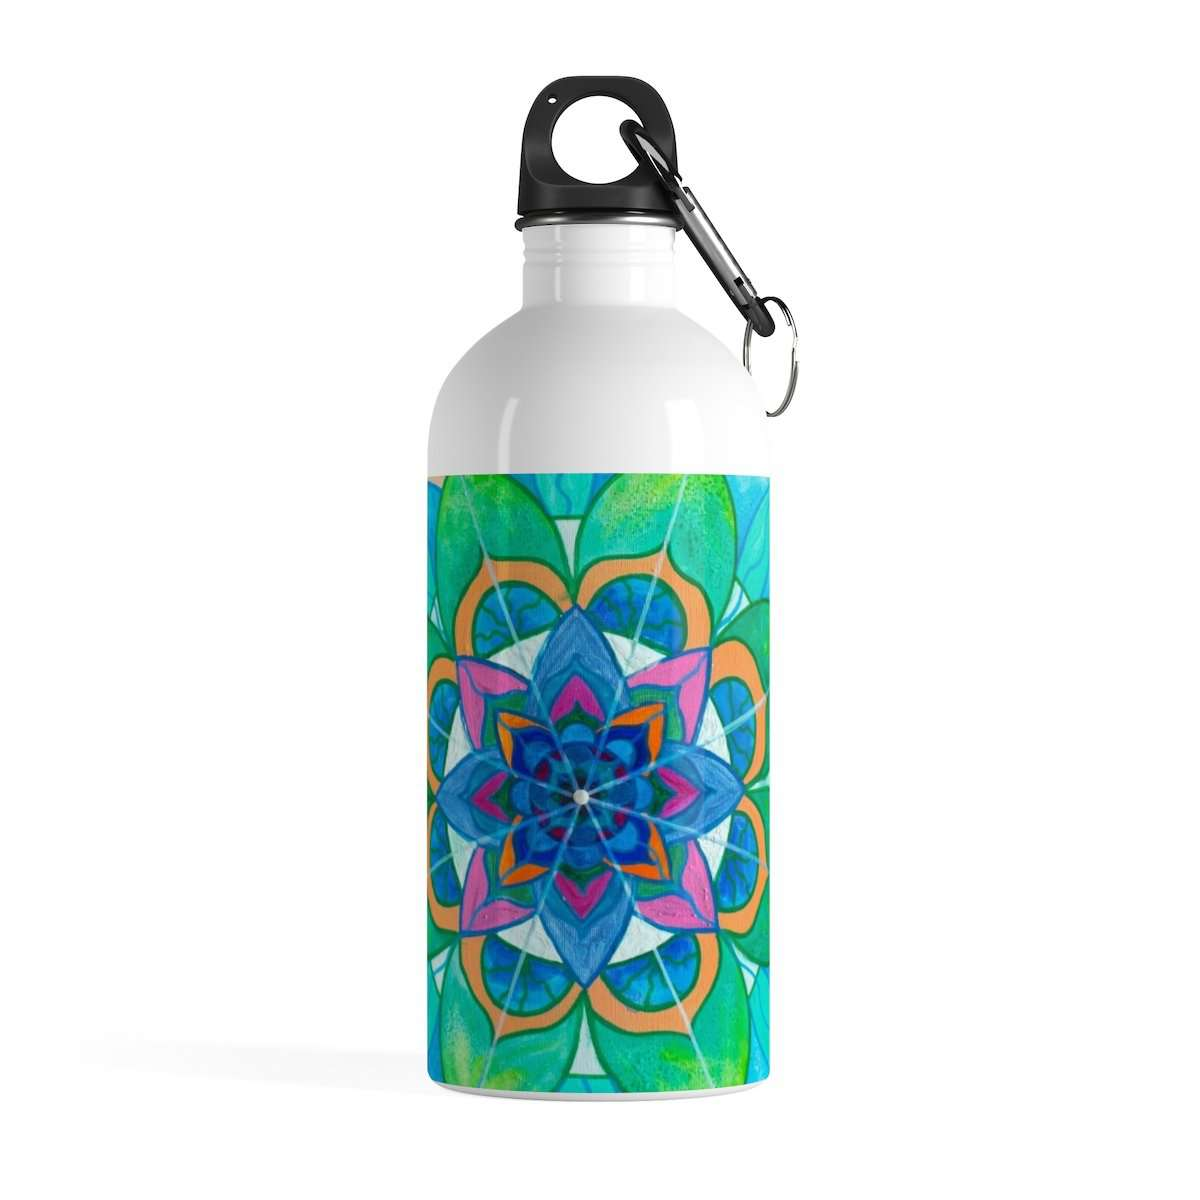 Openness - Stainless Steel Water Bottle